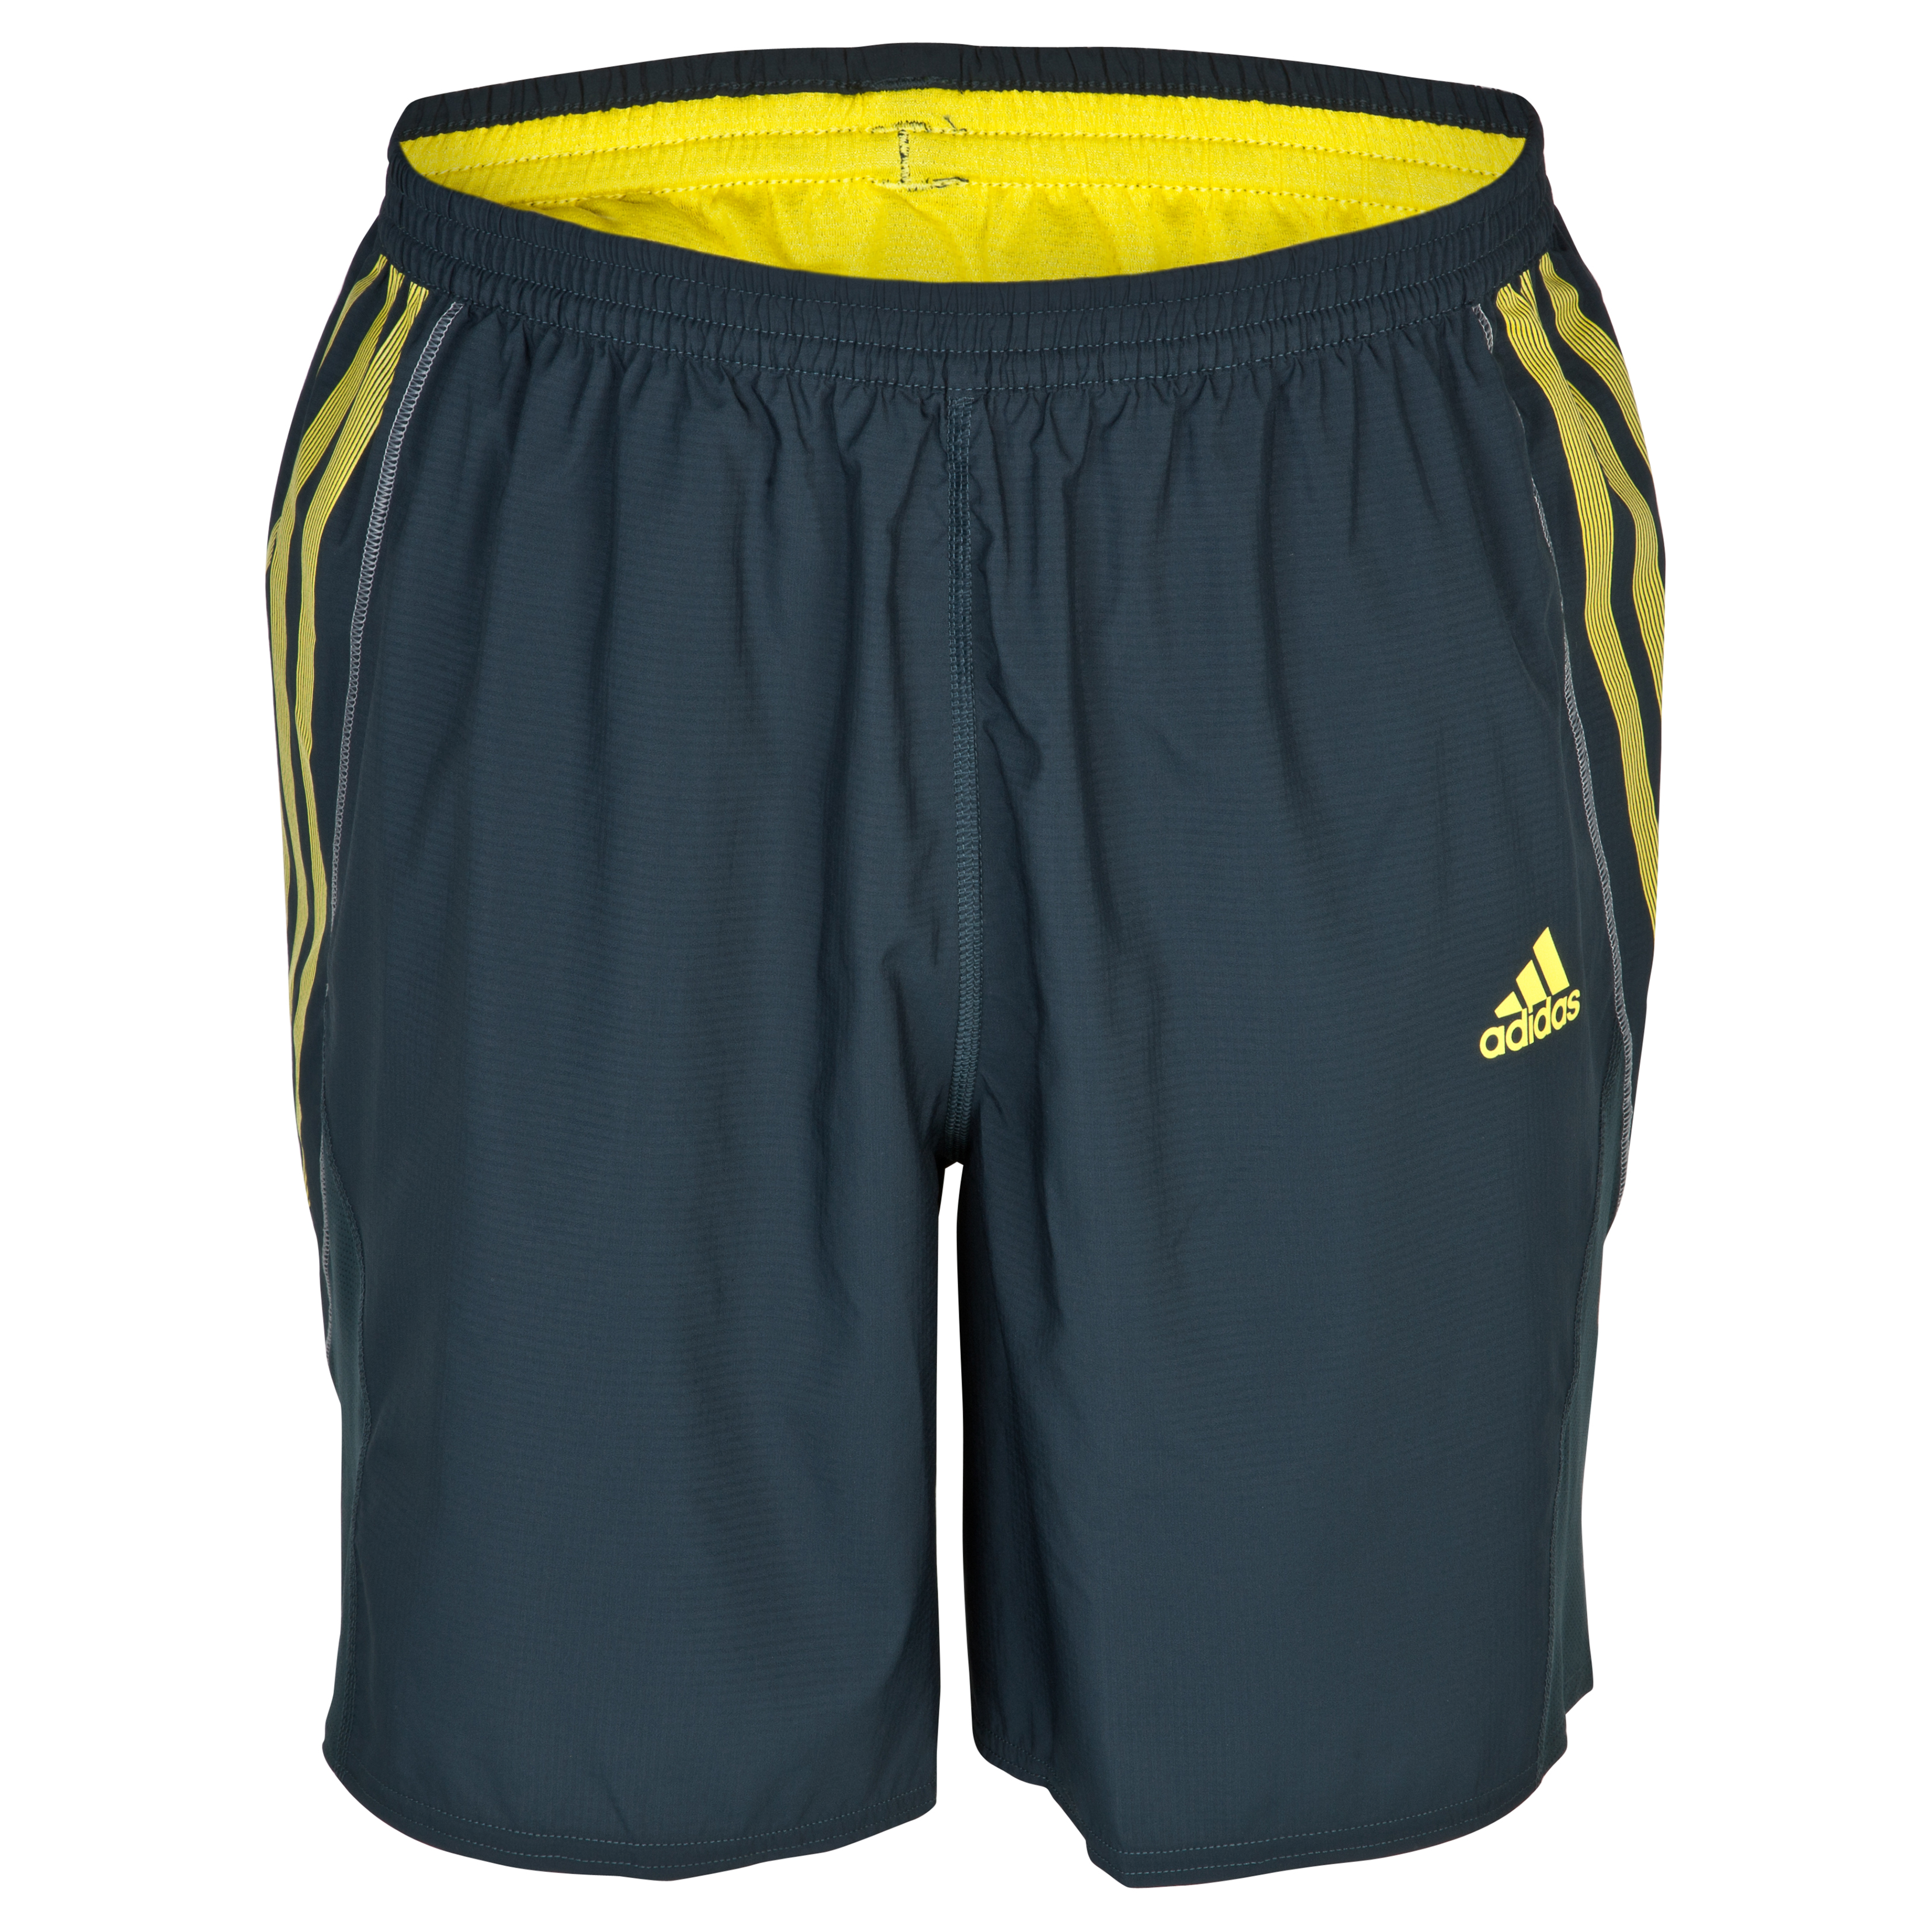 Adidas Adizero 7 Inch Shorts - Tech Onix/Vivid Yellow